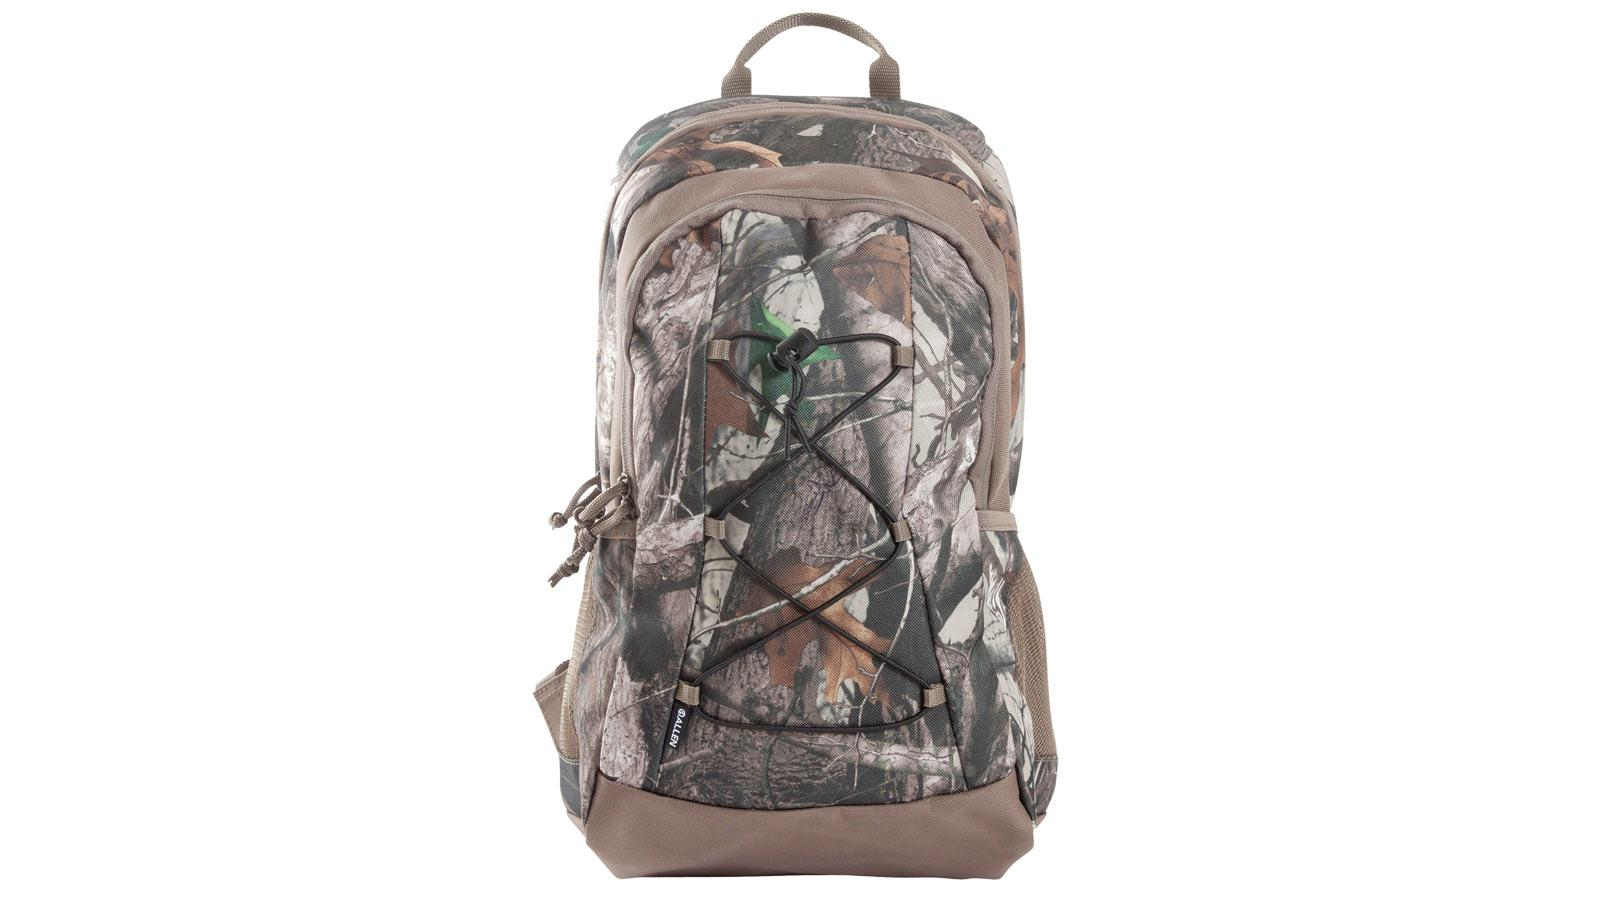 Allen 19522 Timber Raider Day Pack Next Camo